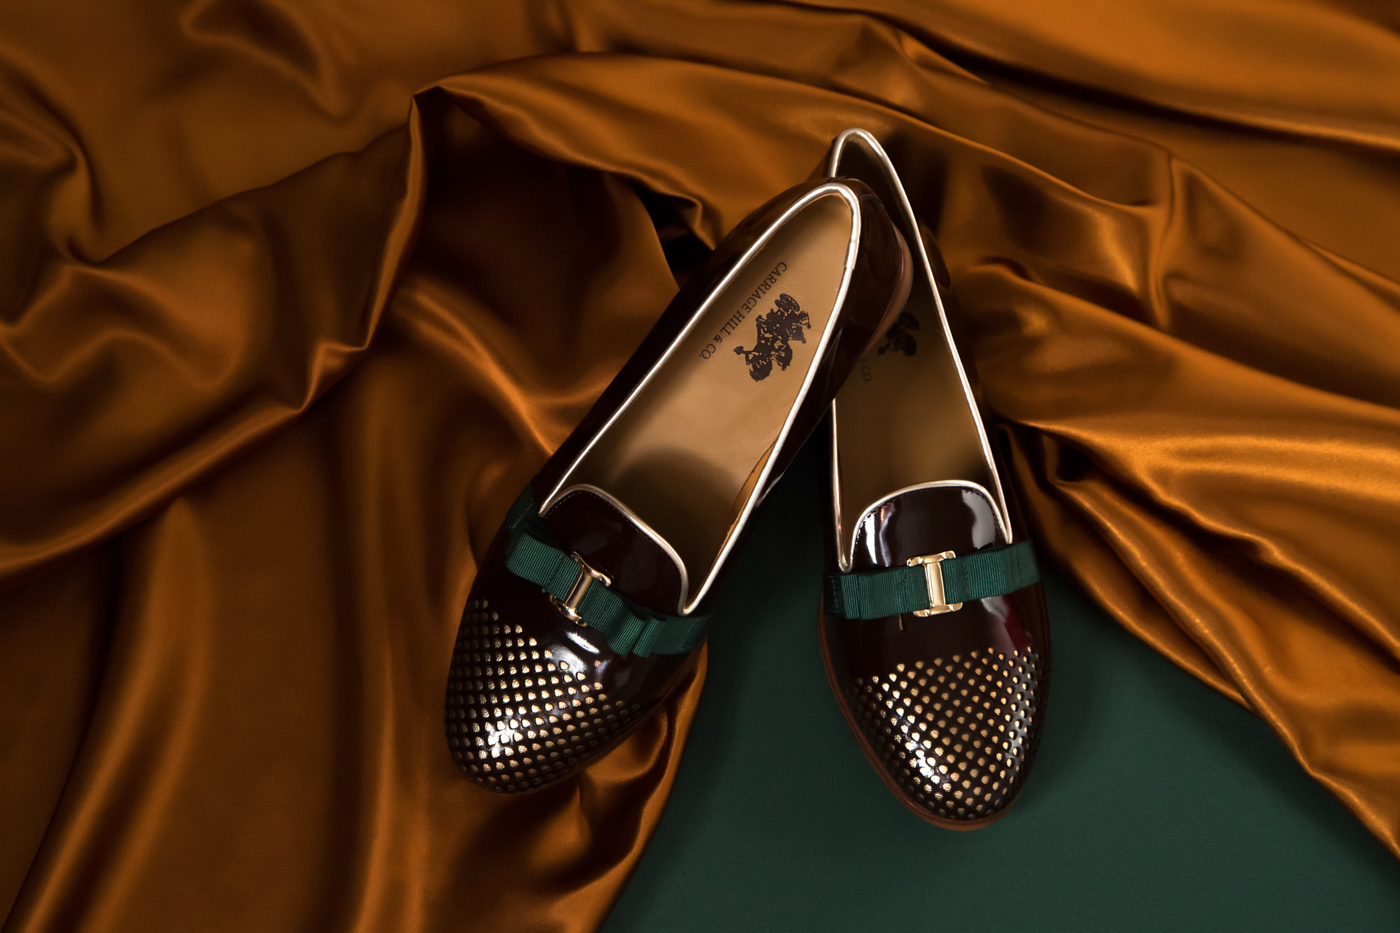 shoes-shoes-shoes-commercial-product-photography-ksenia-pro-photography-3